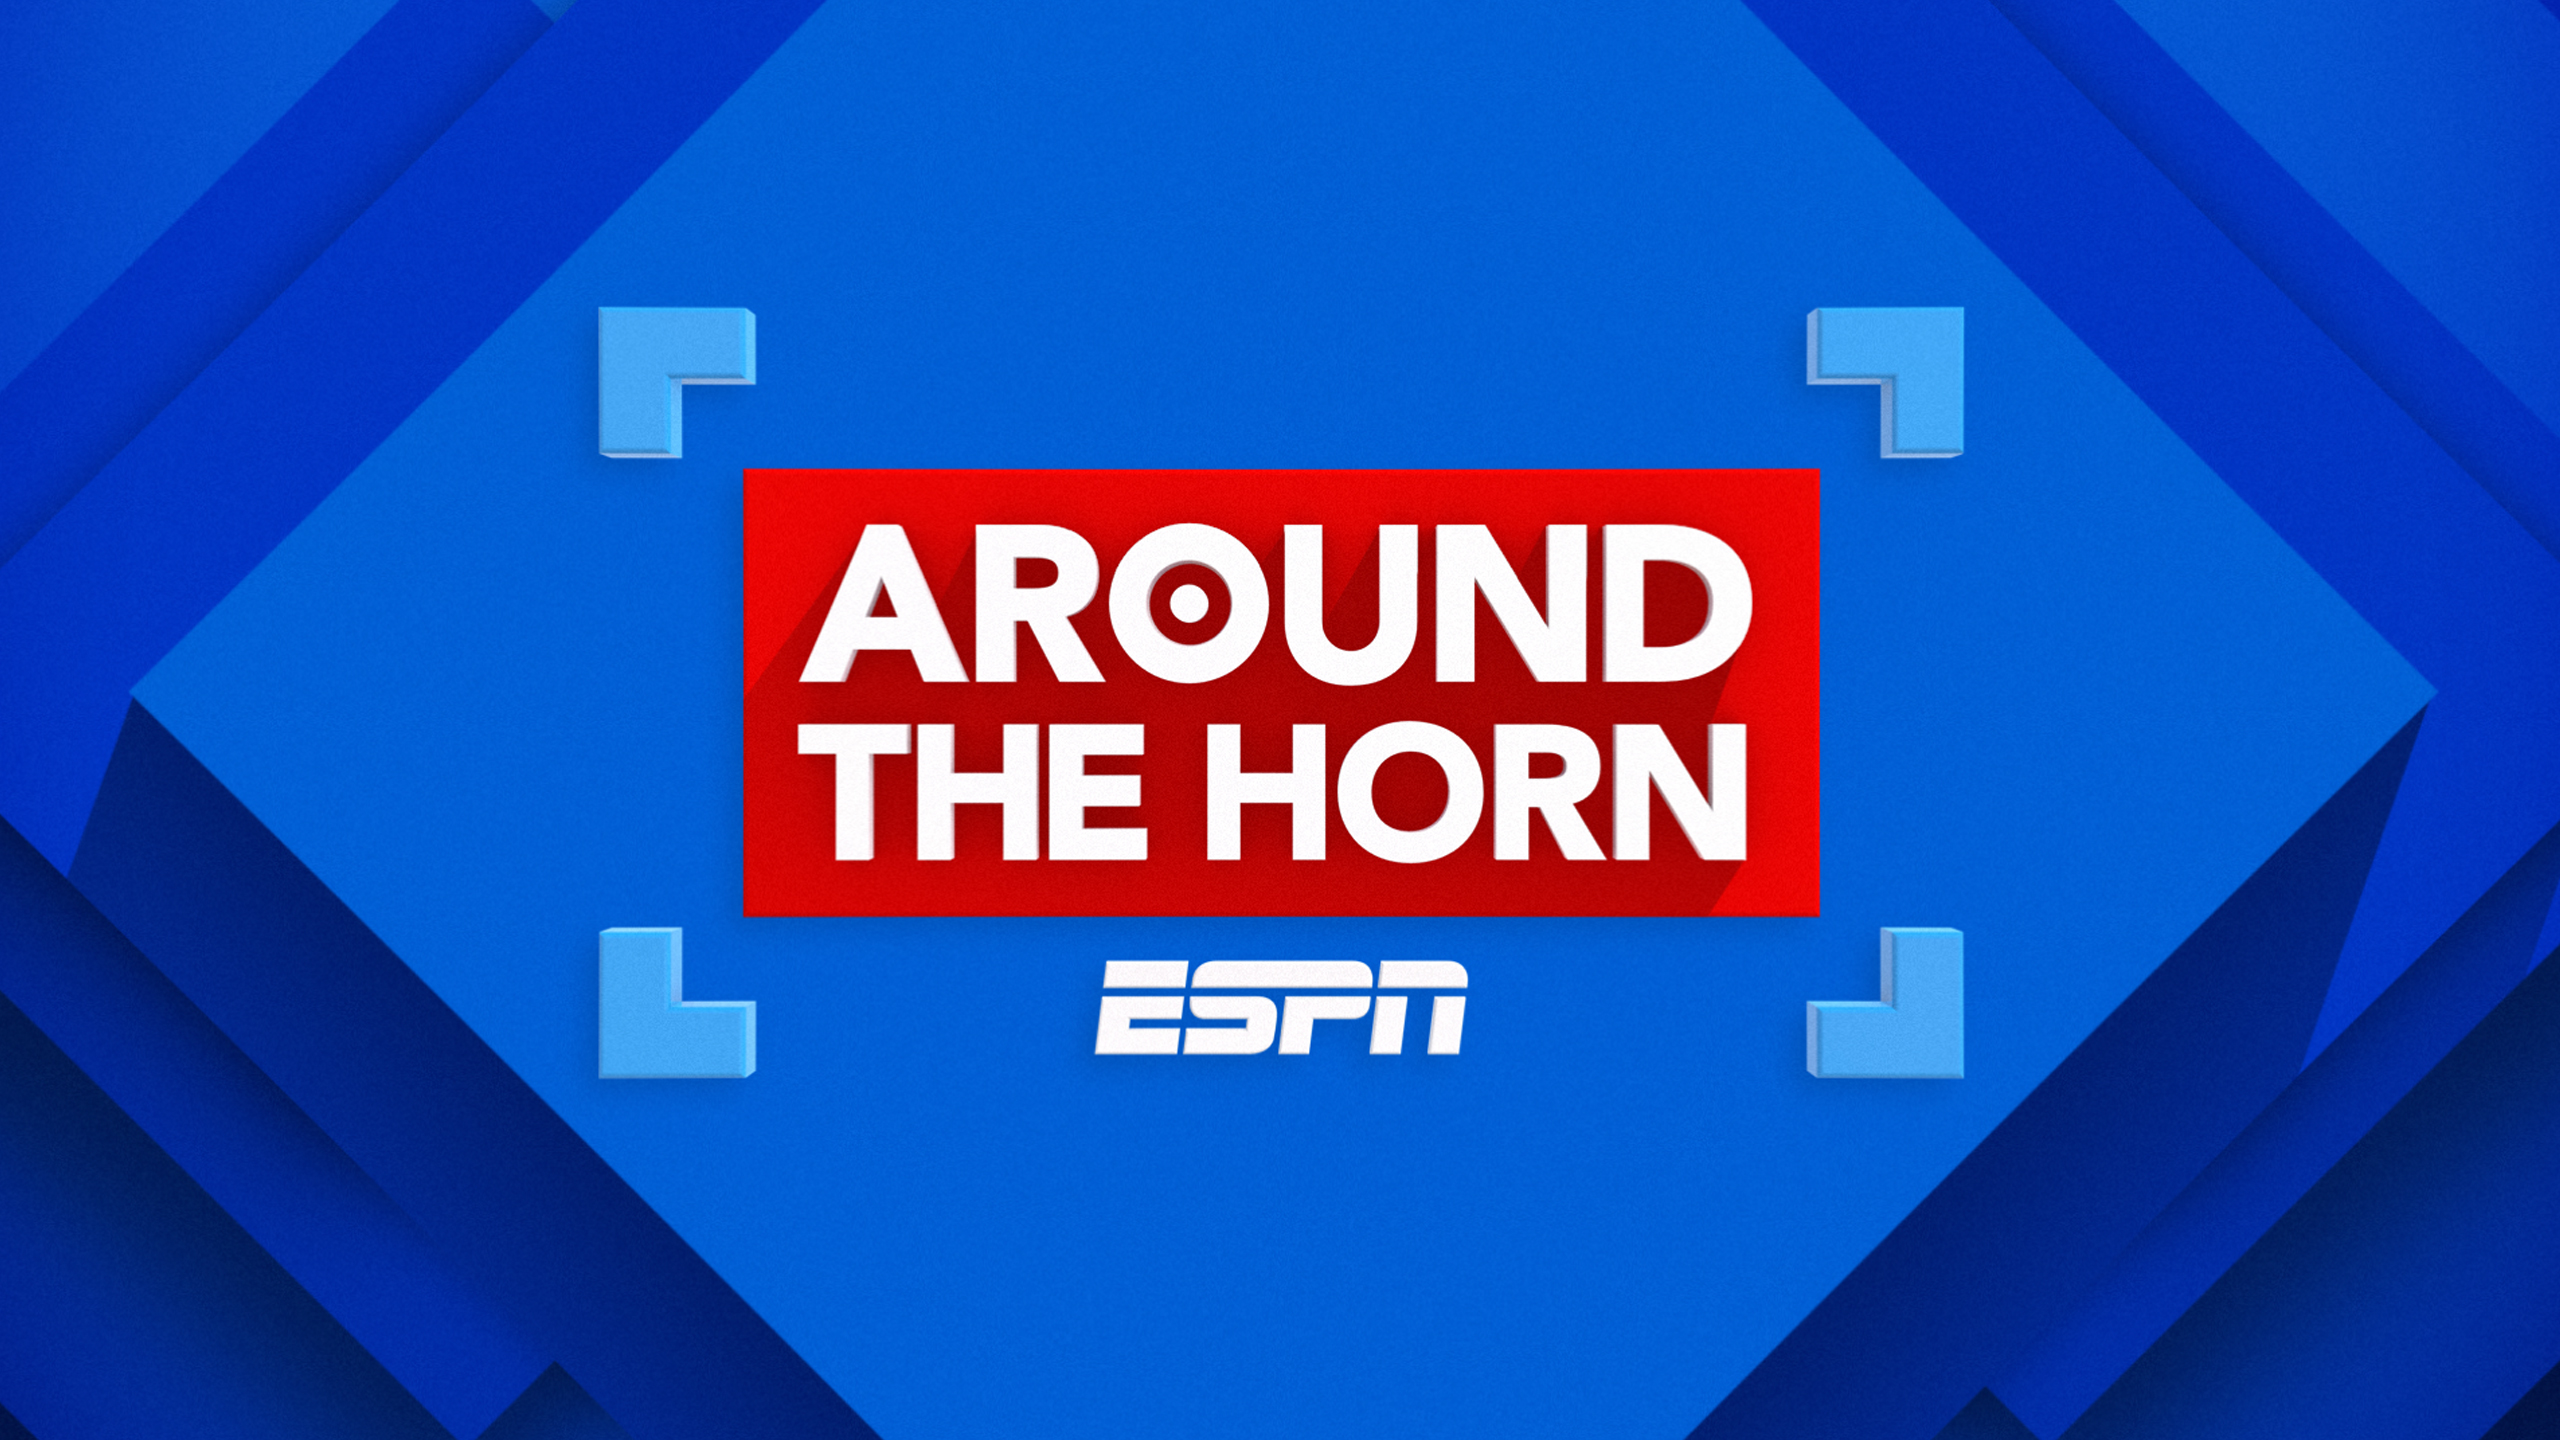 Mon, 3/25 - Around The Horn